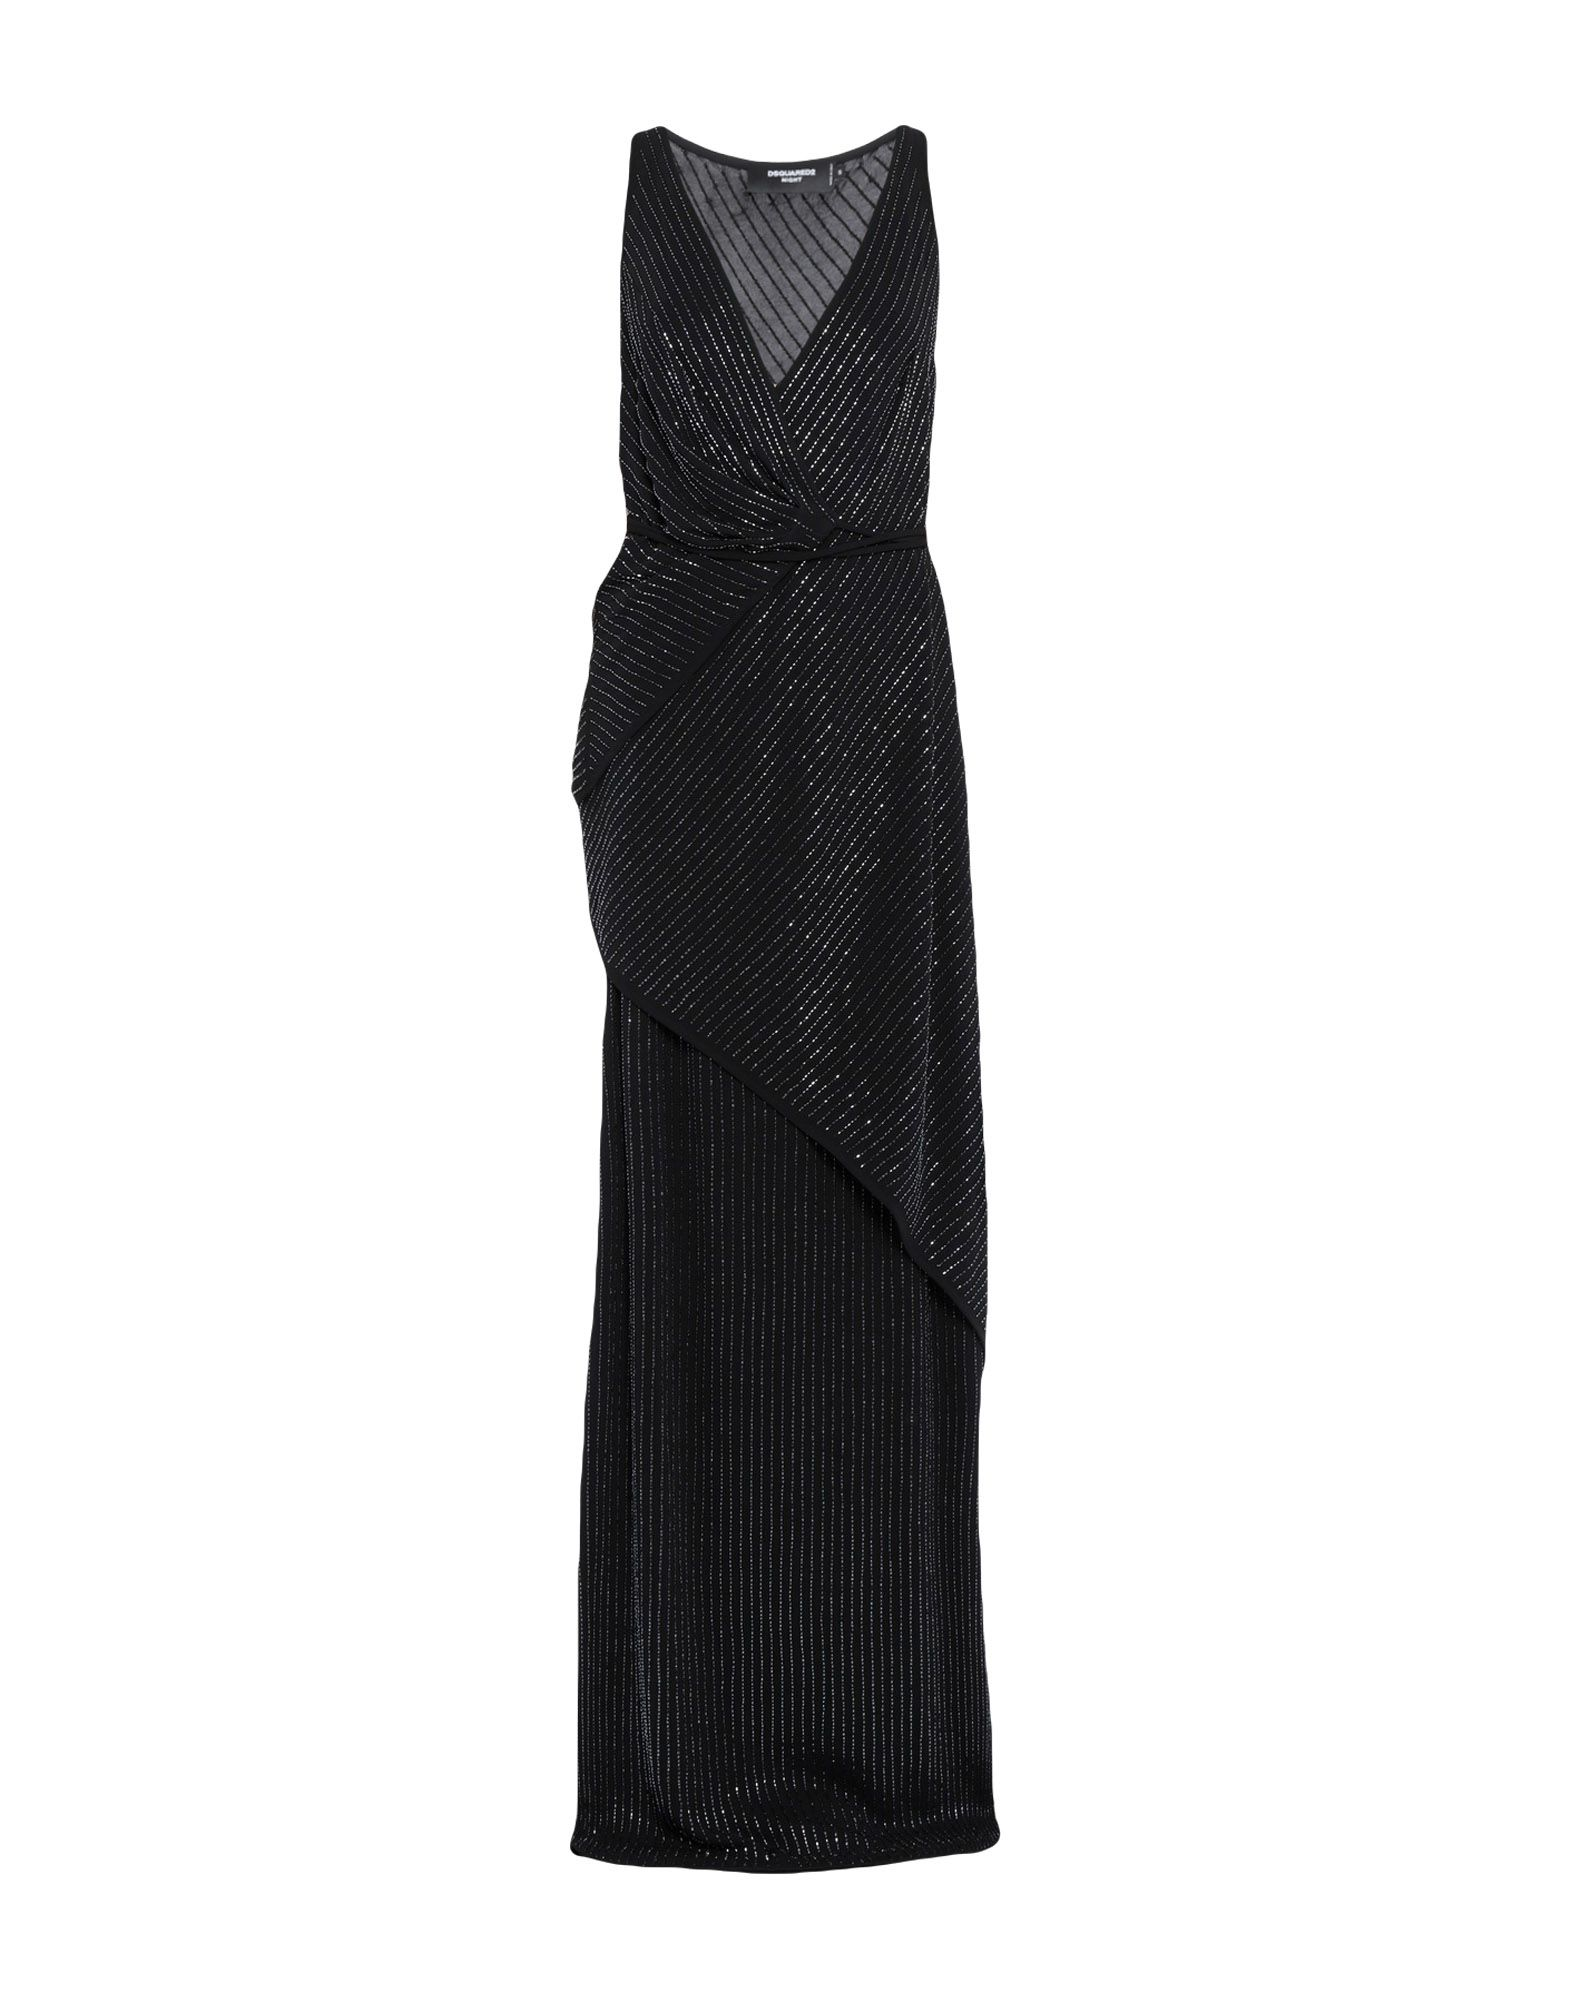 DSQUARED2 Long dresses. jersey, beaded, solid color, deep neckline, sleeveless, no pockets, front closure, self-tie wrap closure, fully lined, dress, small sized. 100% Viscose